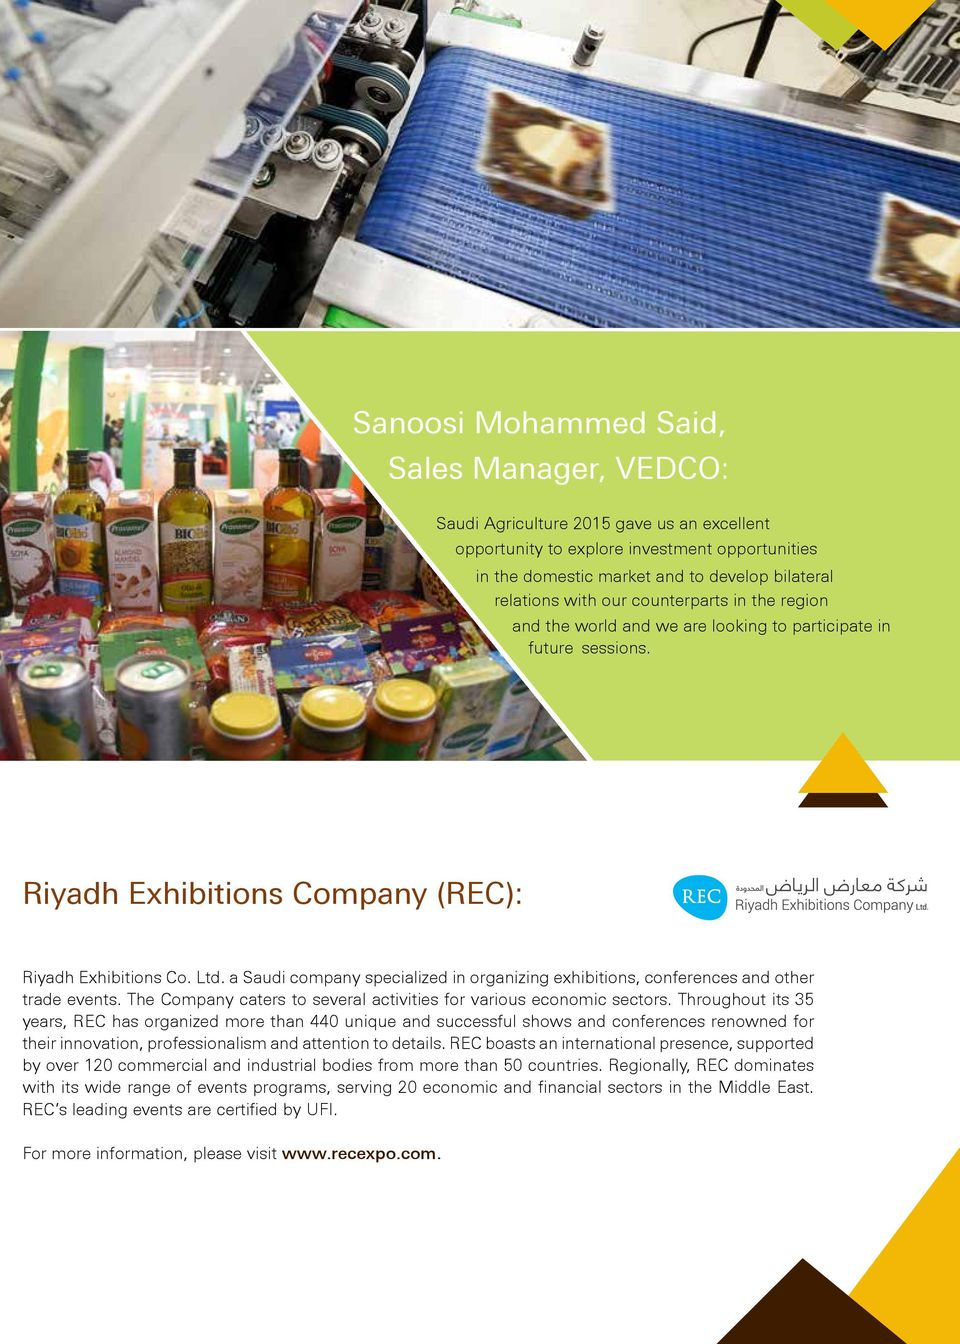 a Saudi company specialized in organizing exhibitions, conferences and other trade events. The Company caters to several activities for various economic sectors.